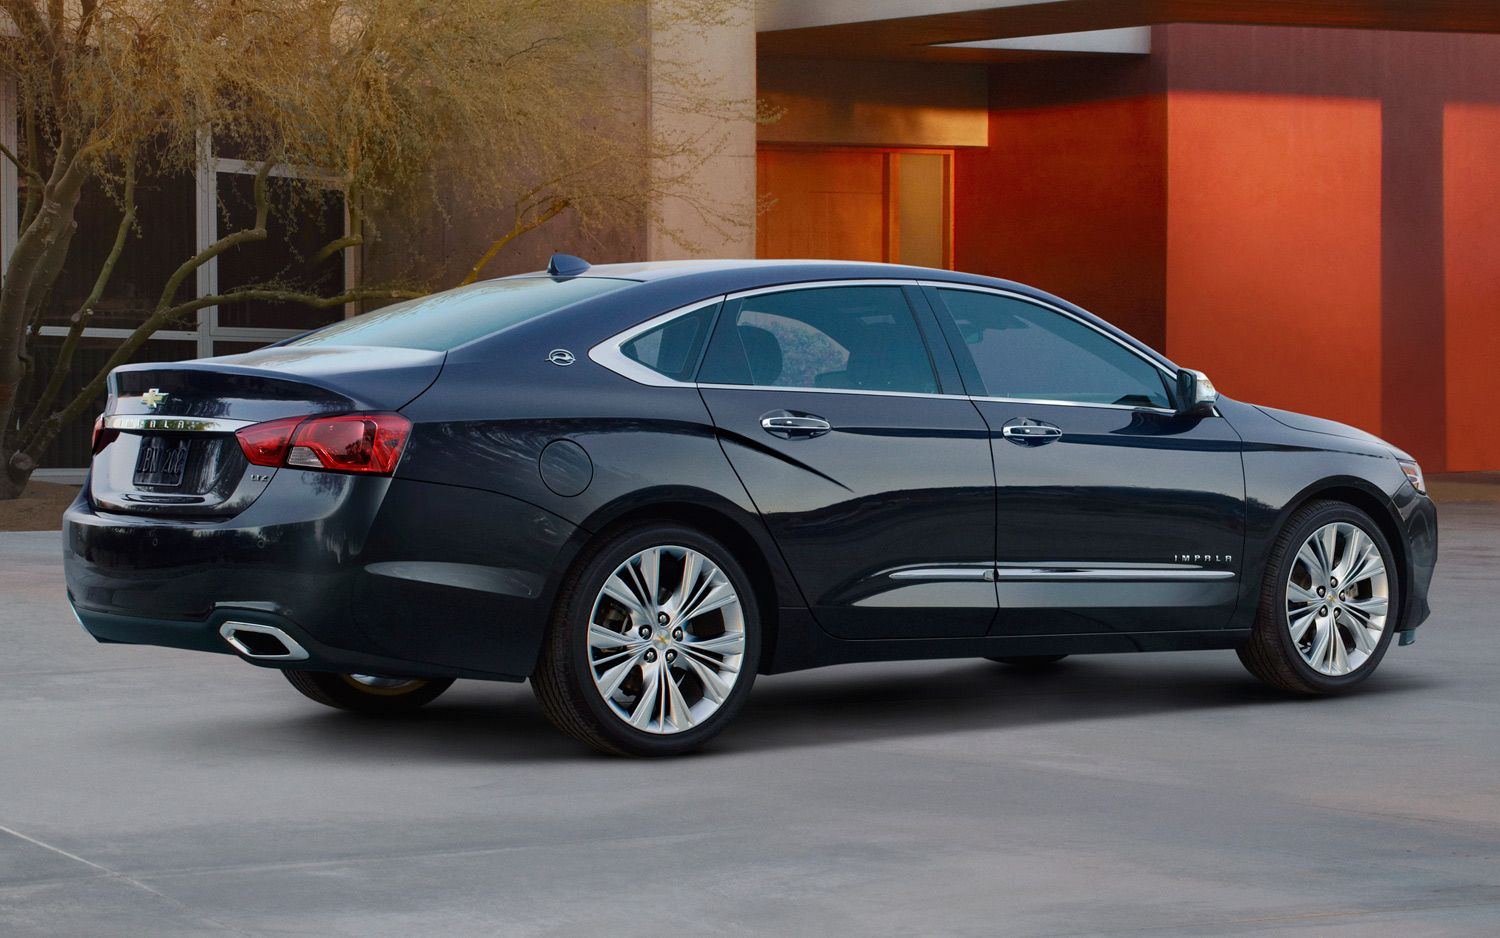 Used 2014 Chevy Impala >> 2015 Chevrolet Impala Review Latest New Car Reviews 2015